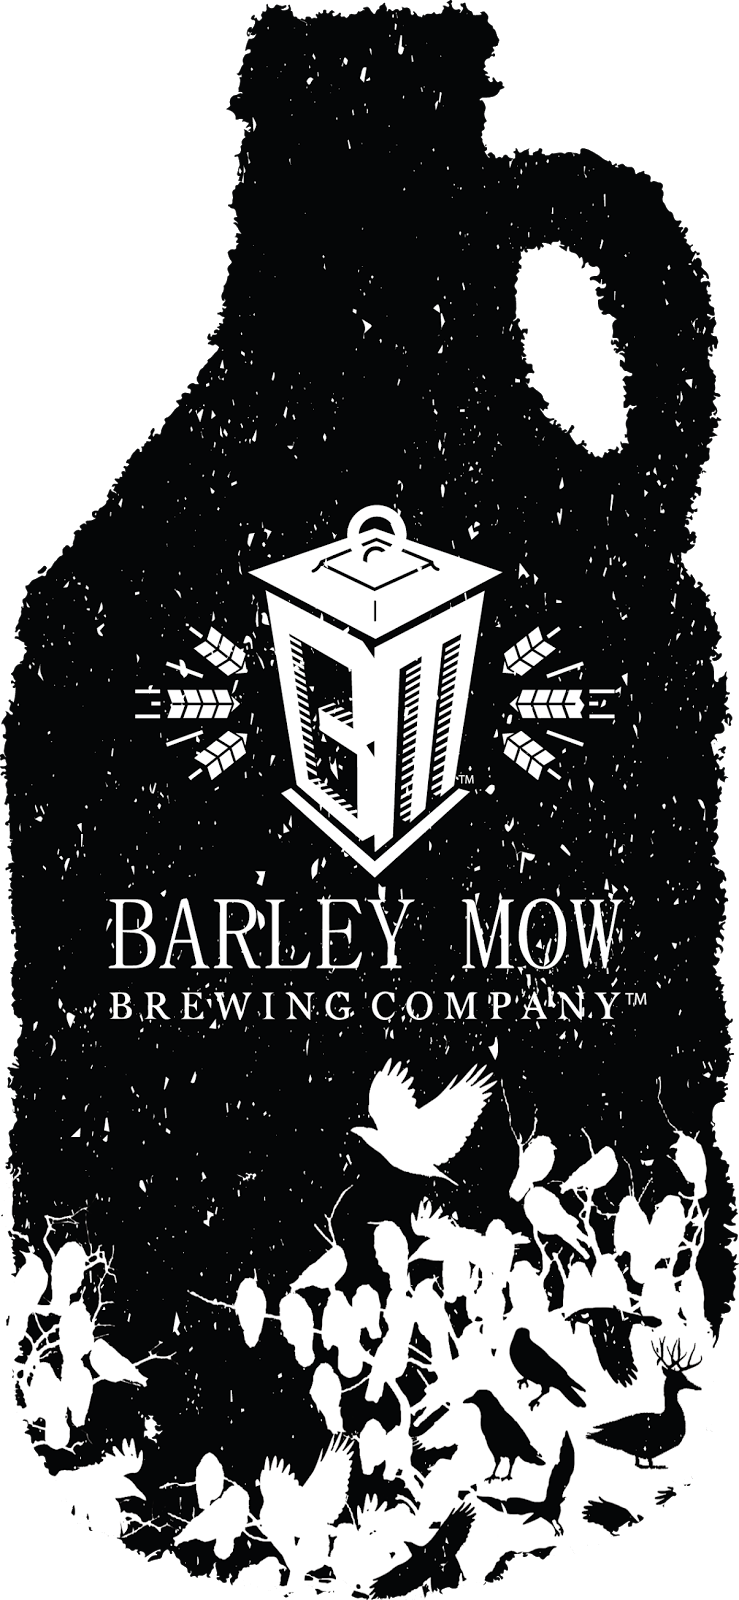 barley mow brewing company growler icon donald ambroziak graphic